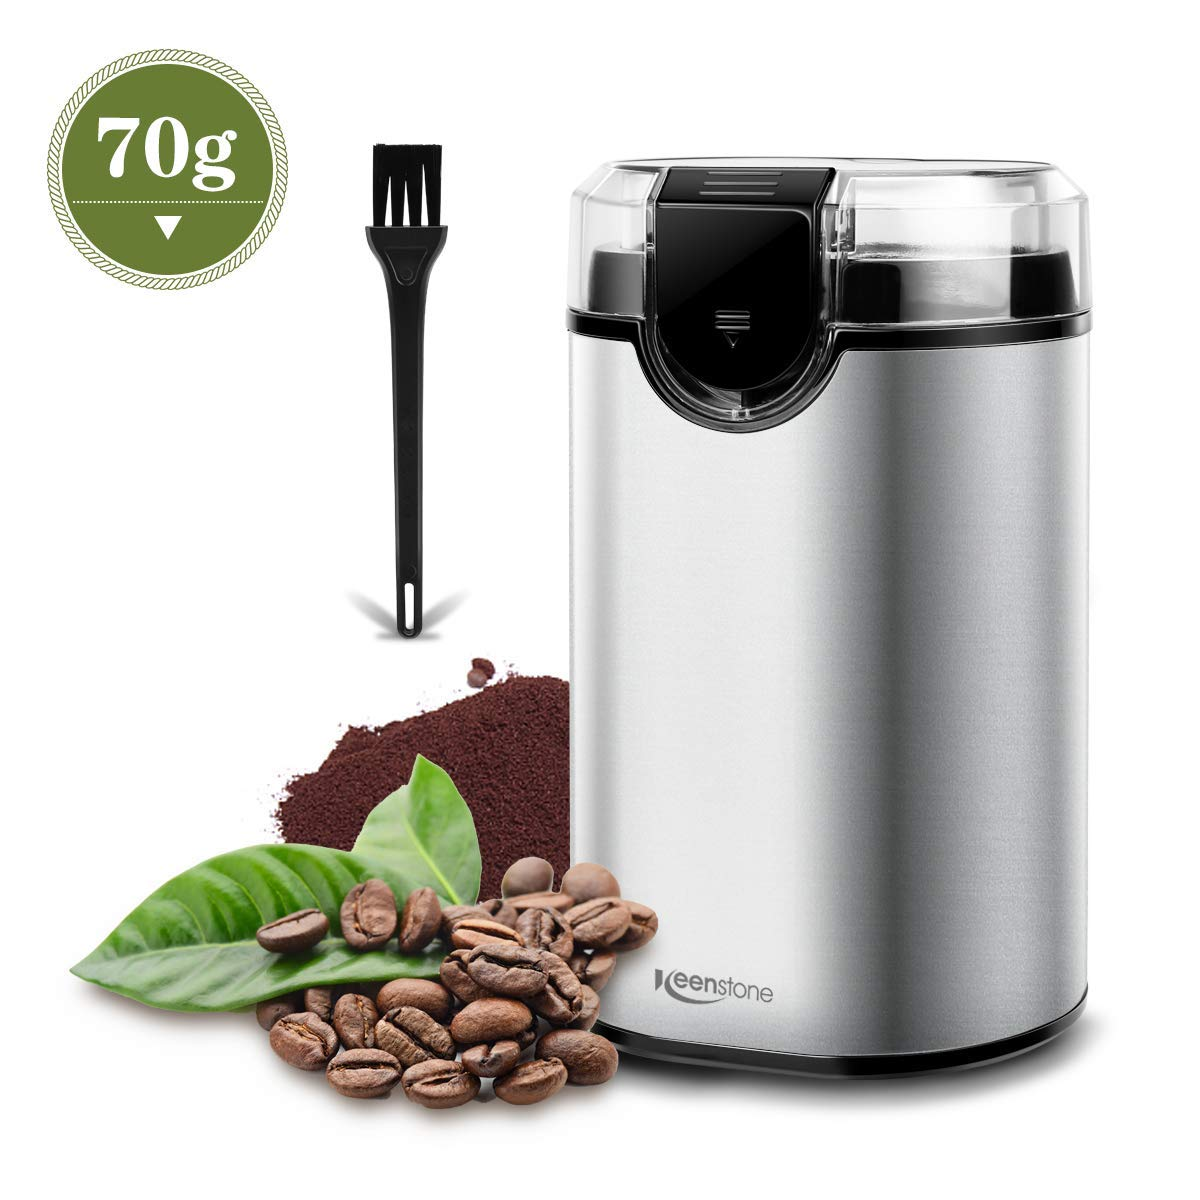 Coffee Grinder, Keenstone Electric Coffee Bean Grinder with Stainless Steel Blade Fast Grinding for Coffee, Spices, Nut and Herb, Detachable Power Cord & Little Brush Included【2-year Warranty】